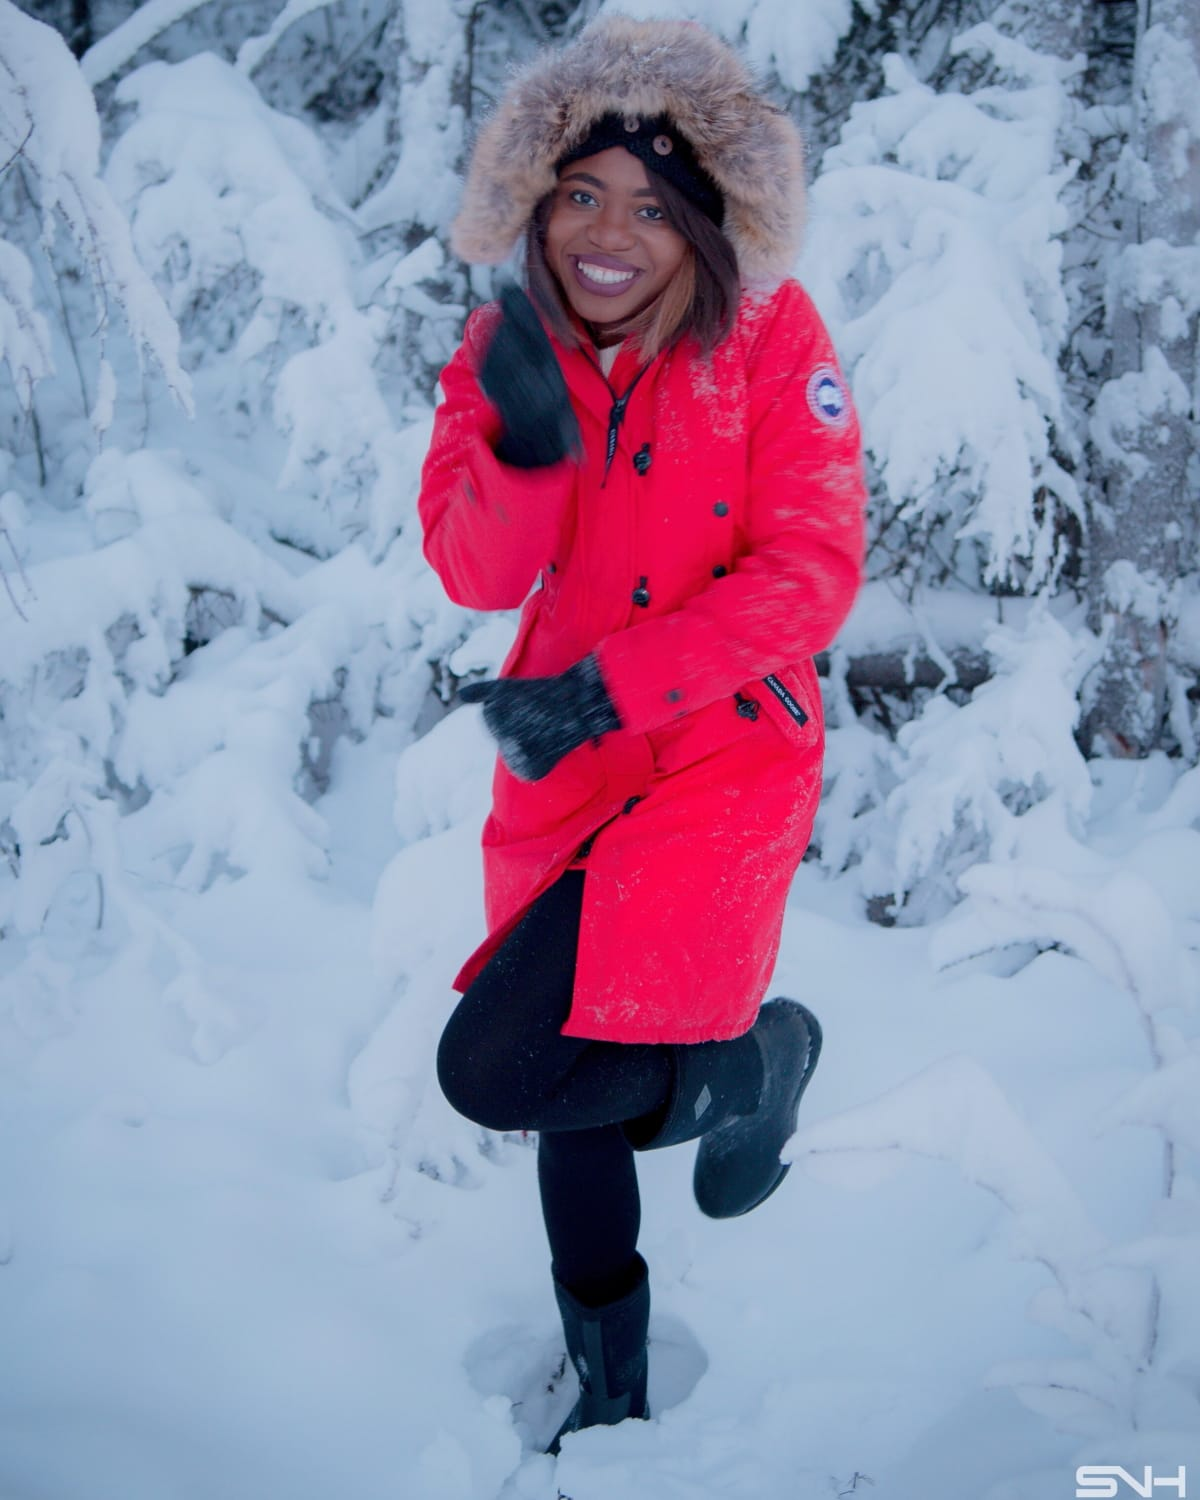 A roundup of 21 amazing alternatives to Canada Goose's parkas that are more affordable for a fraction of the price (as low as $38!).